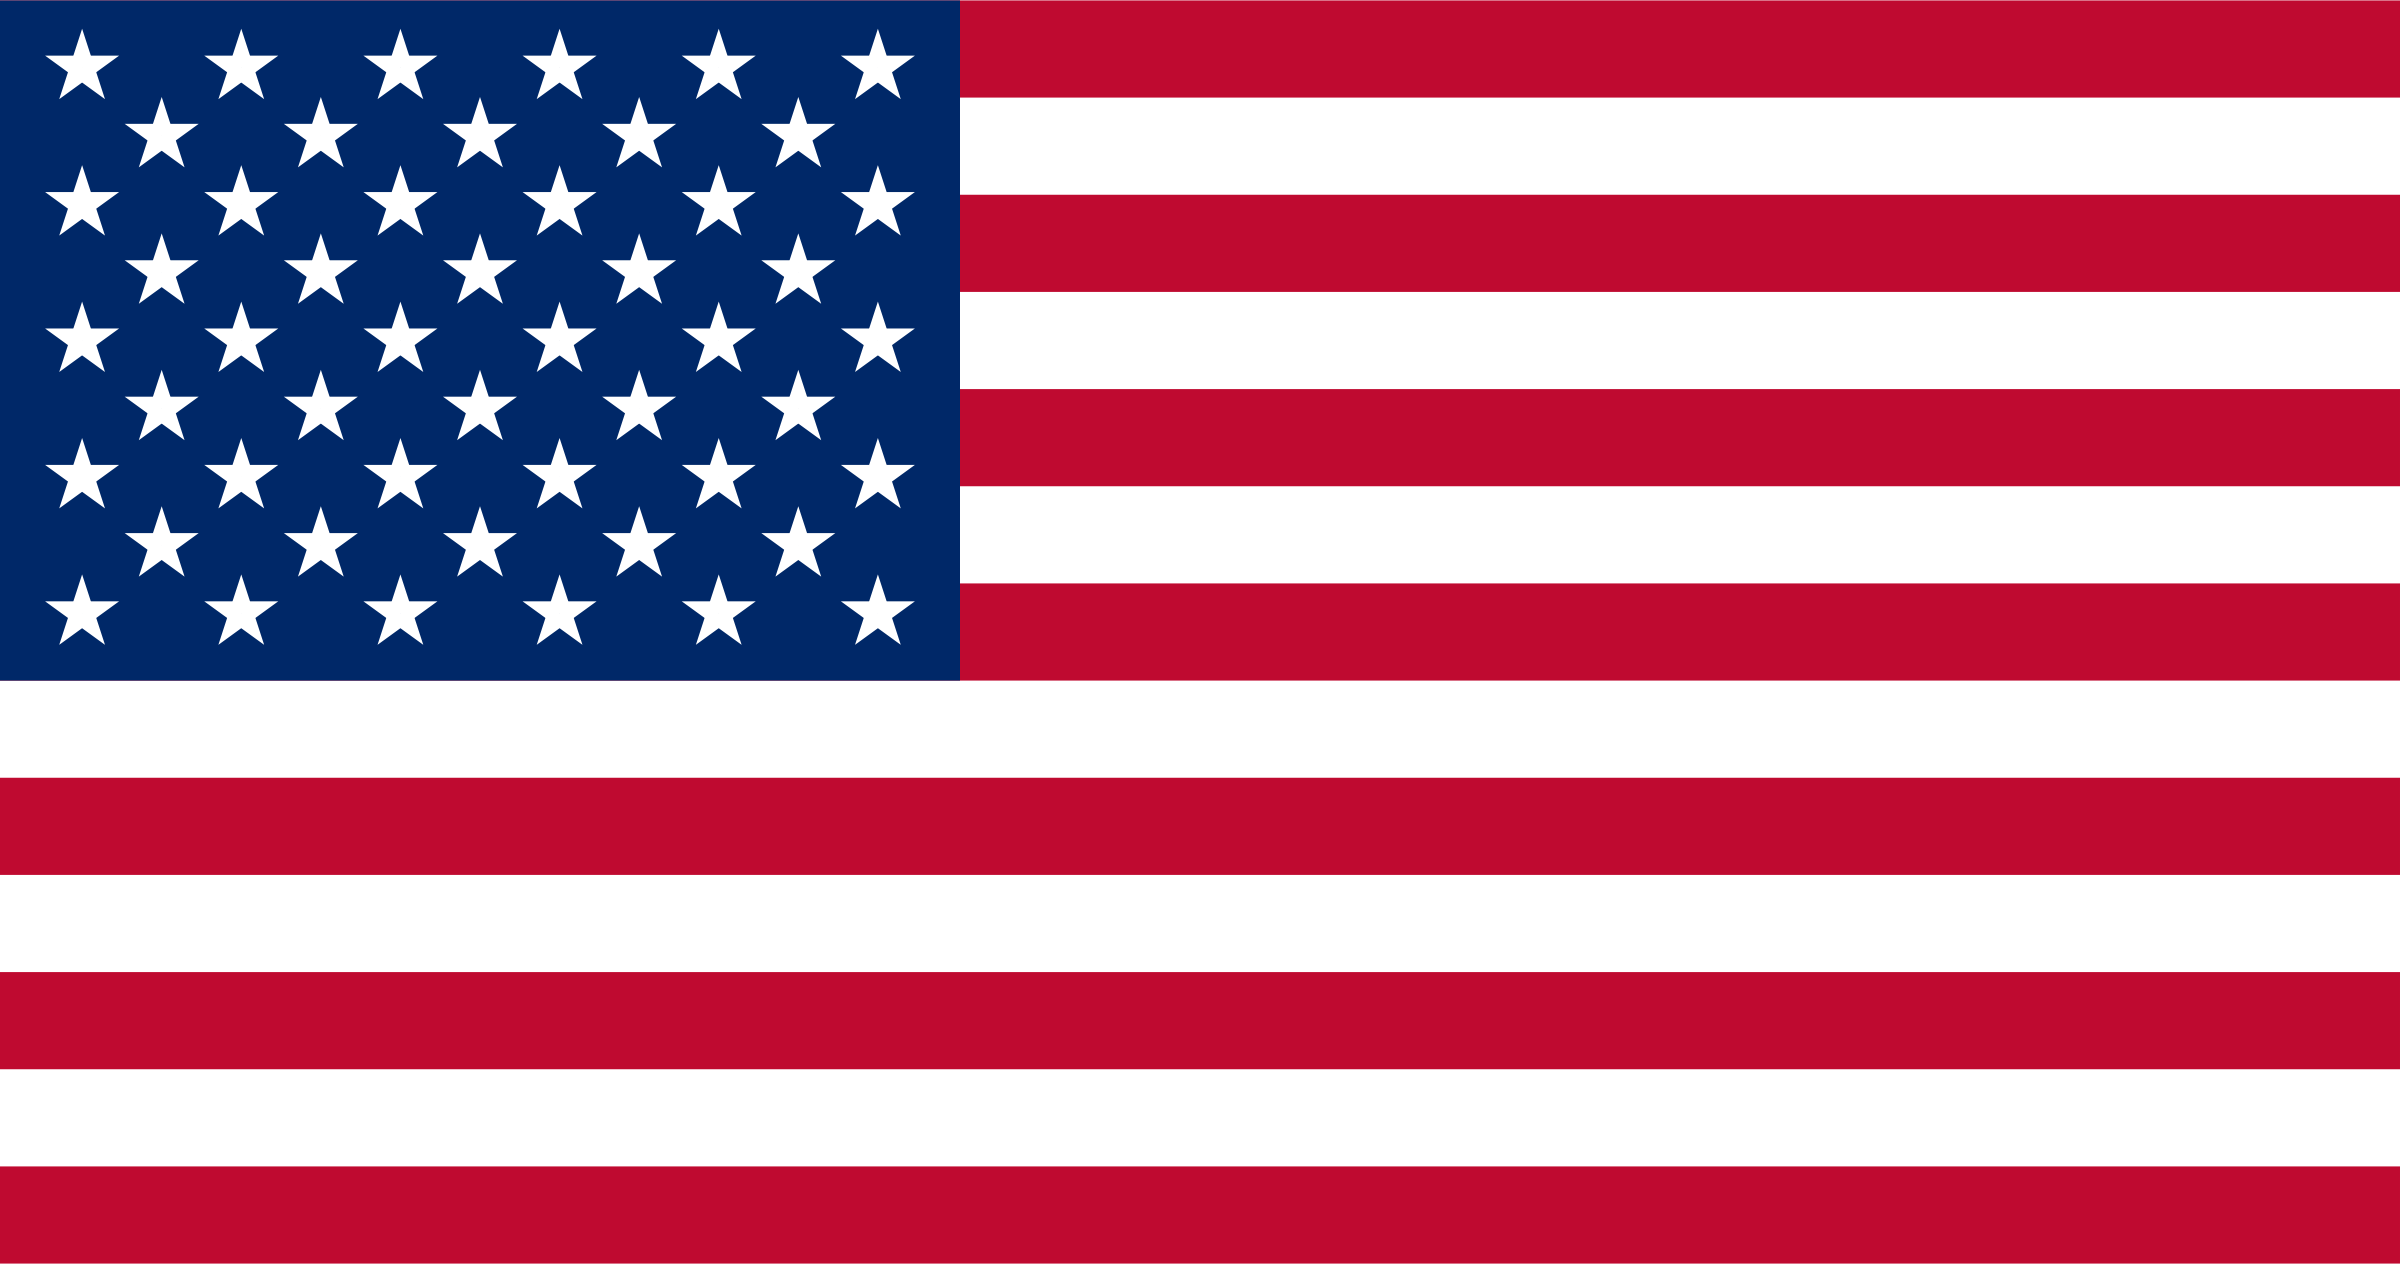 Flag of the United States by papapishu